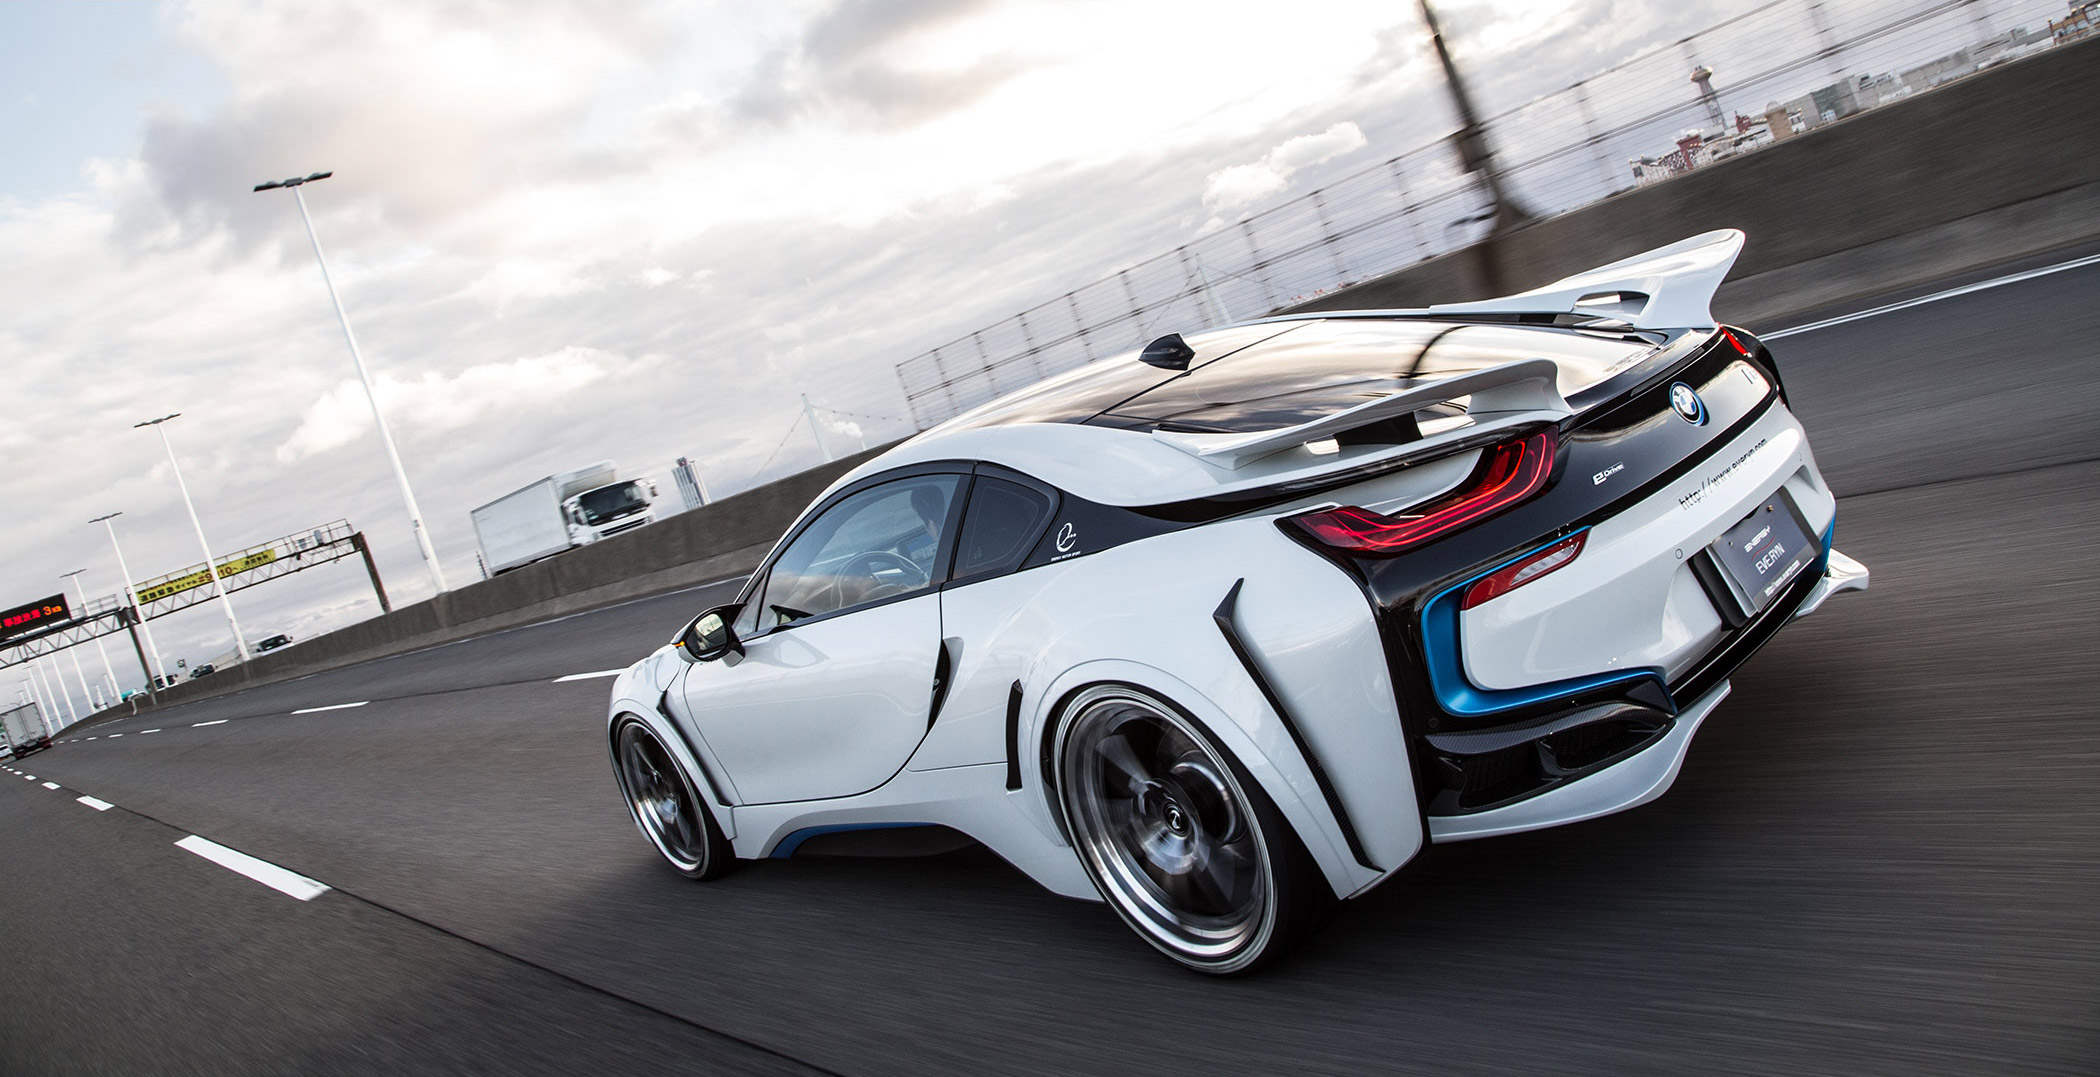 Bmw I8 Receives Energy Motor Sport Bodykit Package Paul Tan Image